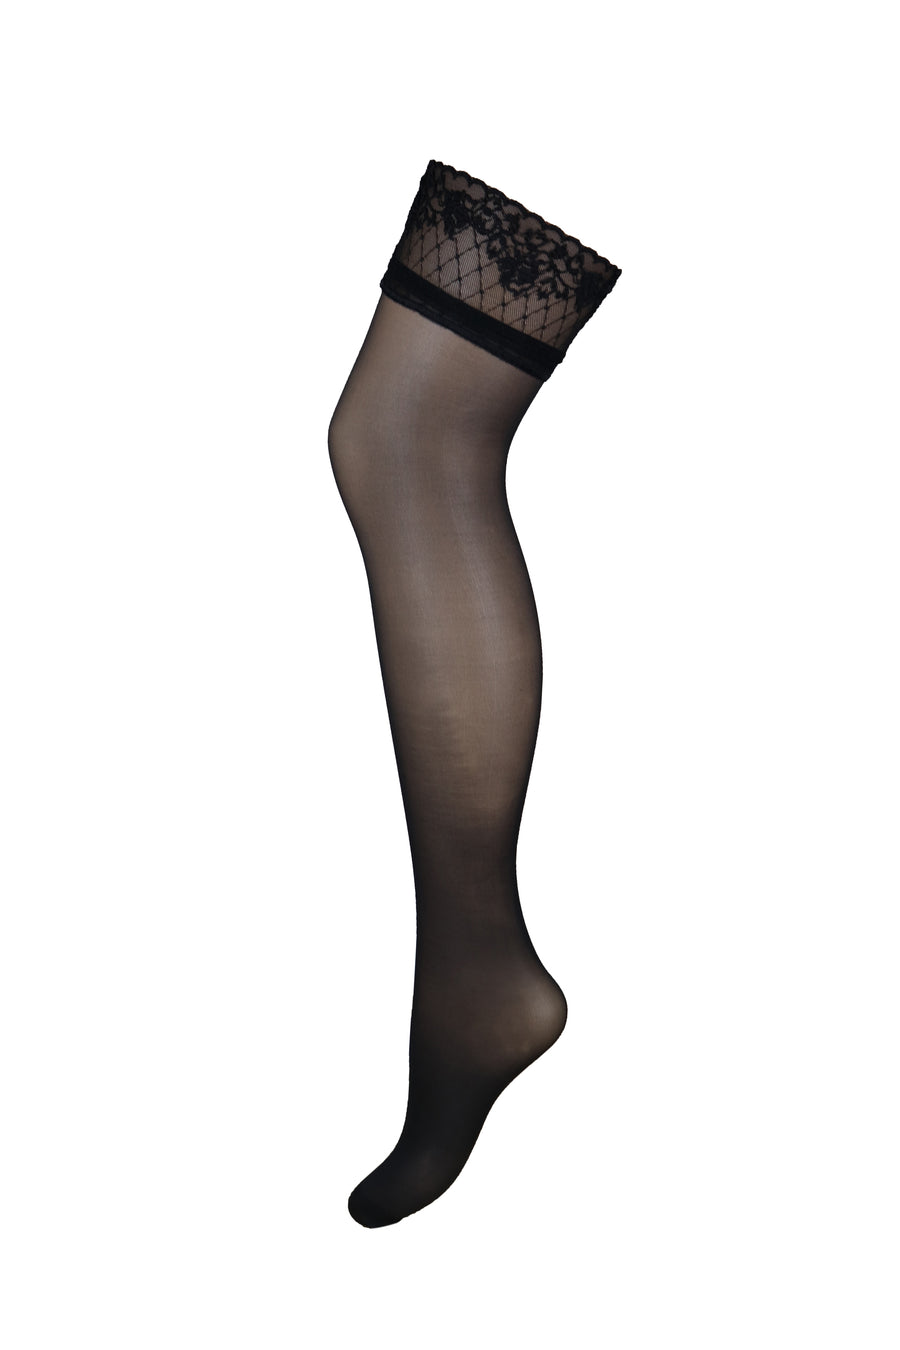 Pour Moi - Sensation Lace Top 15 Denier Stocking - Black